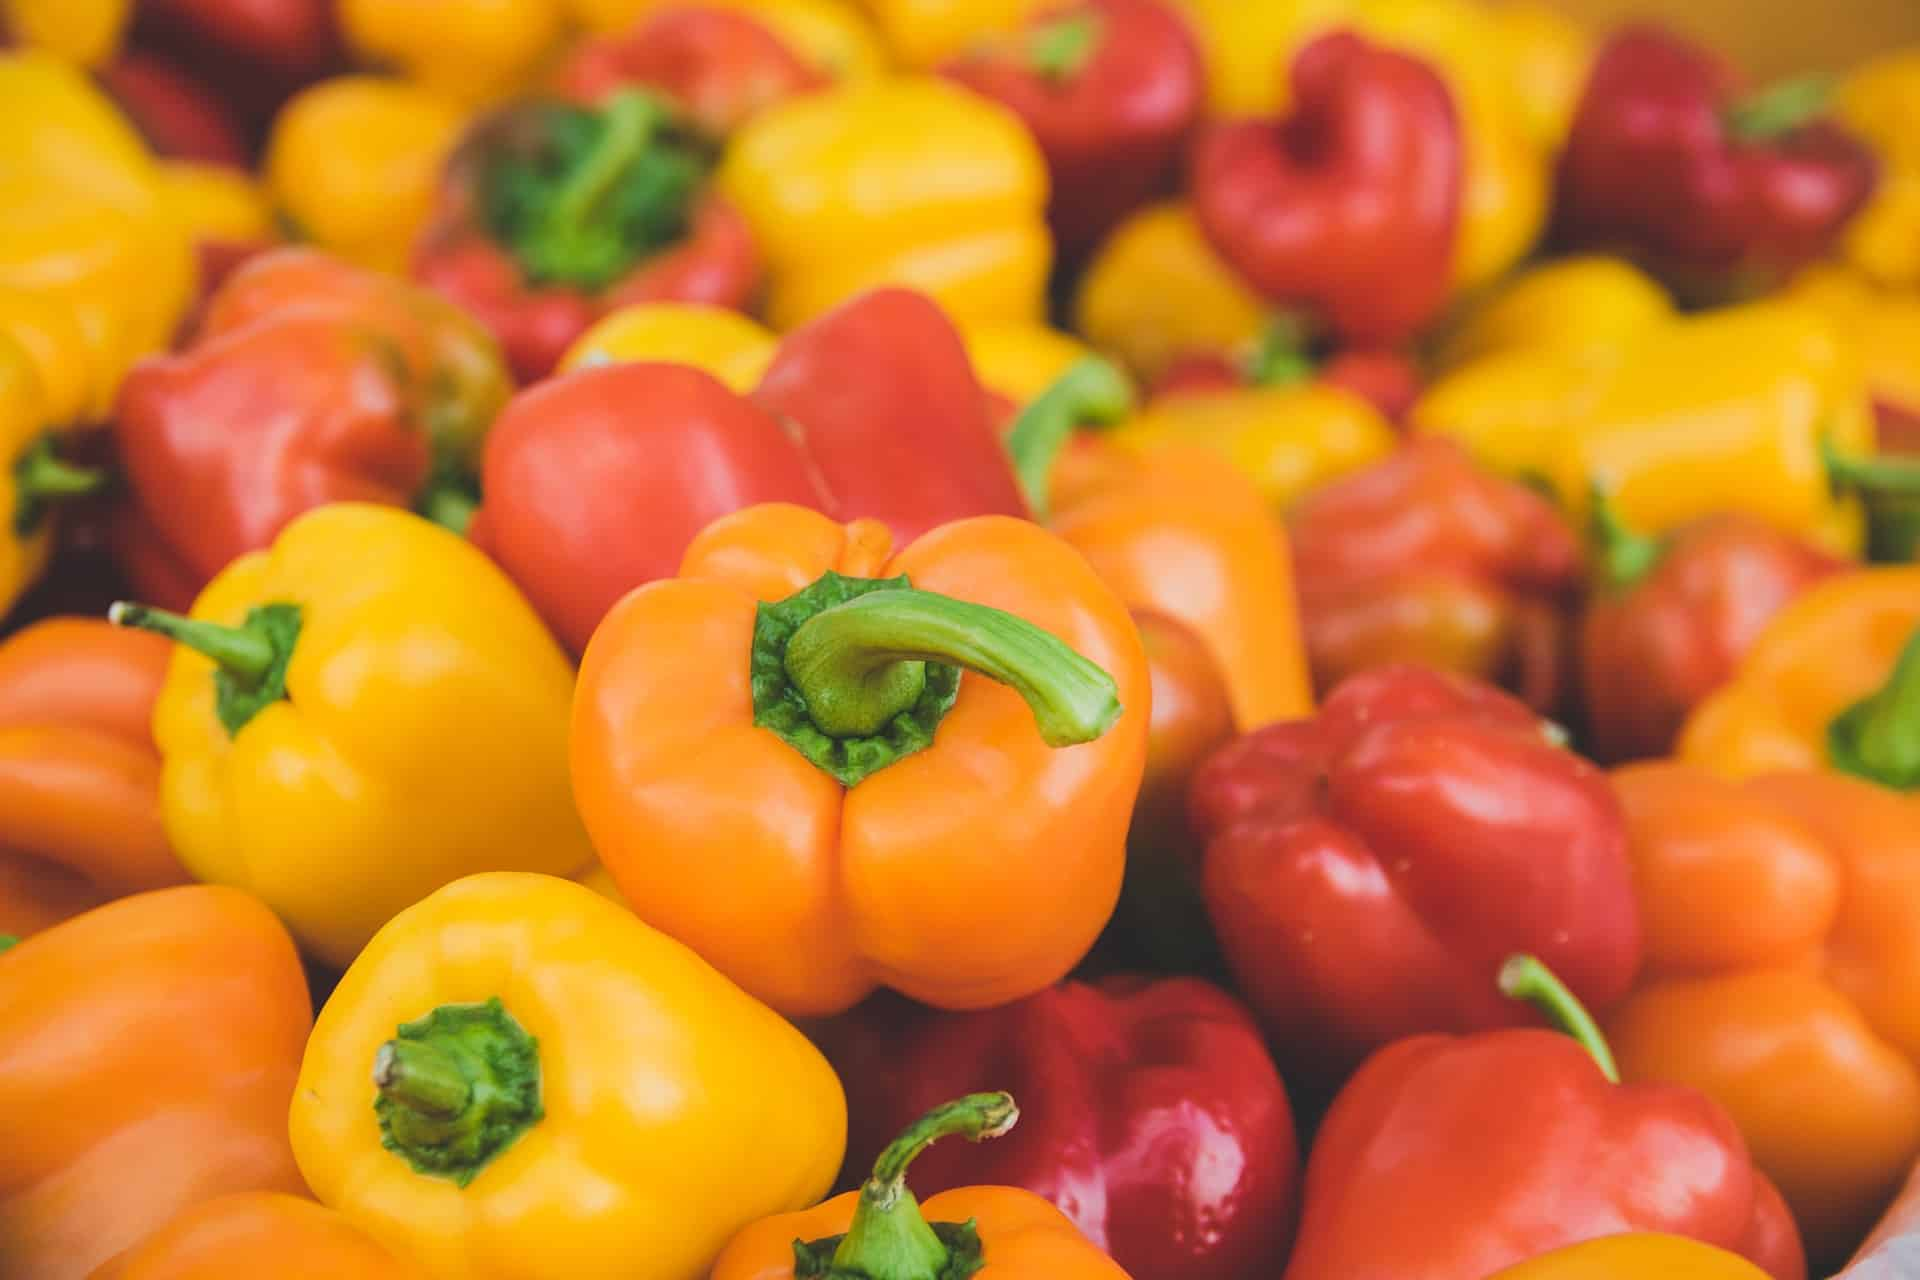 Delta-3 Carene is found in Bell Peppers